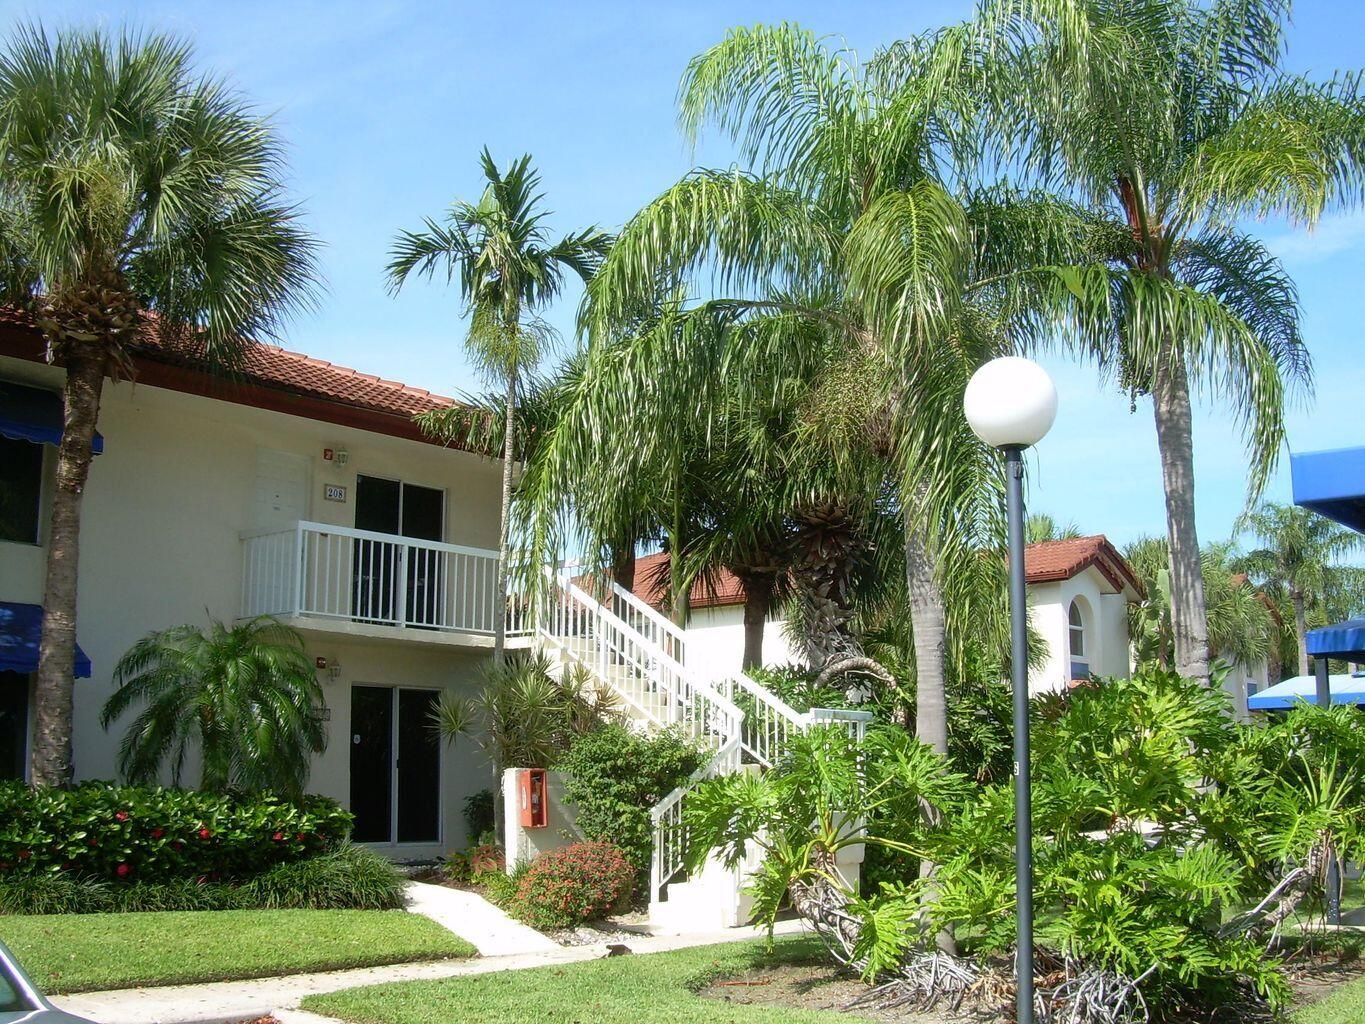 280 NW 67 Street 108 For Sale 10736425, FL